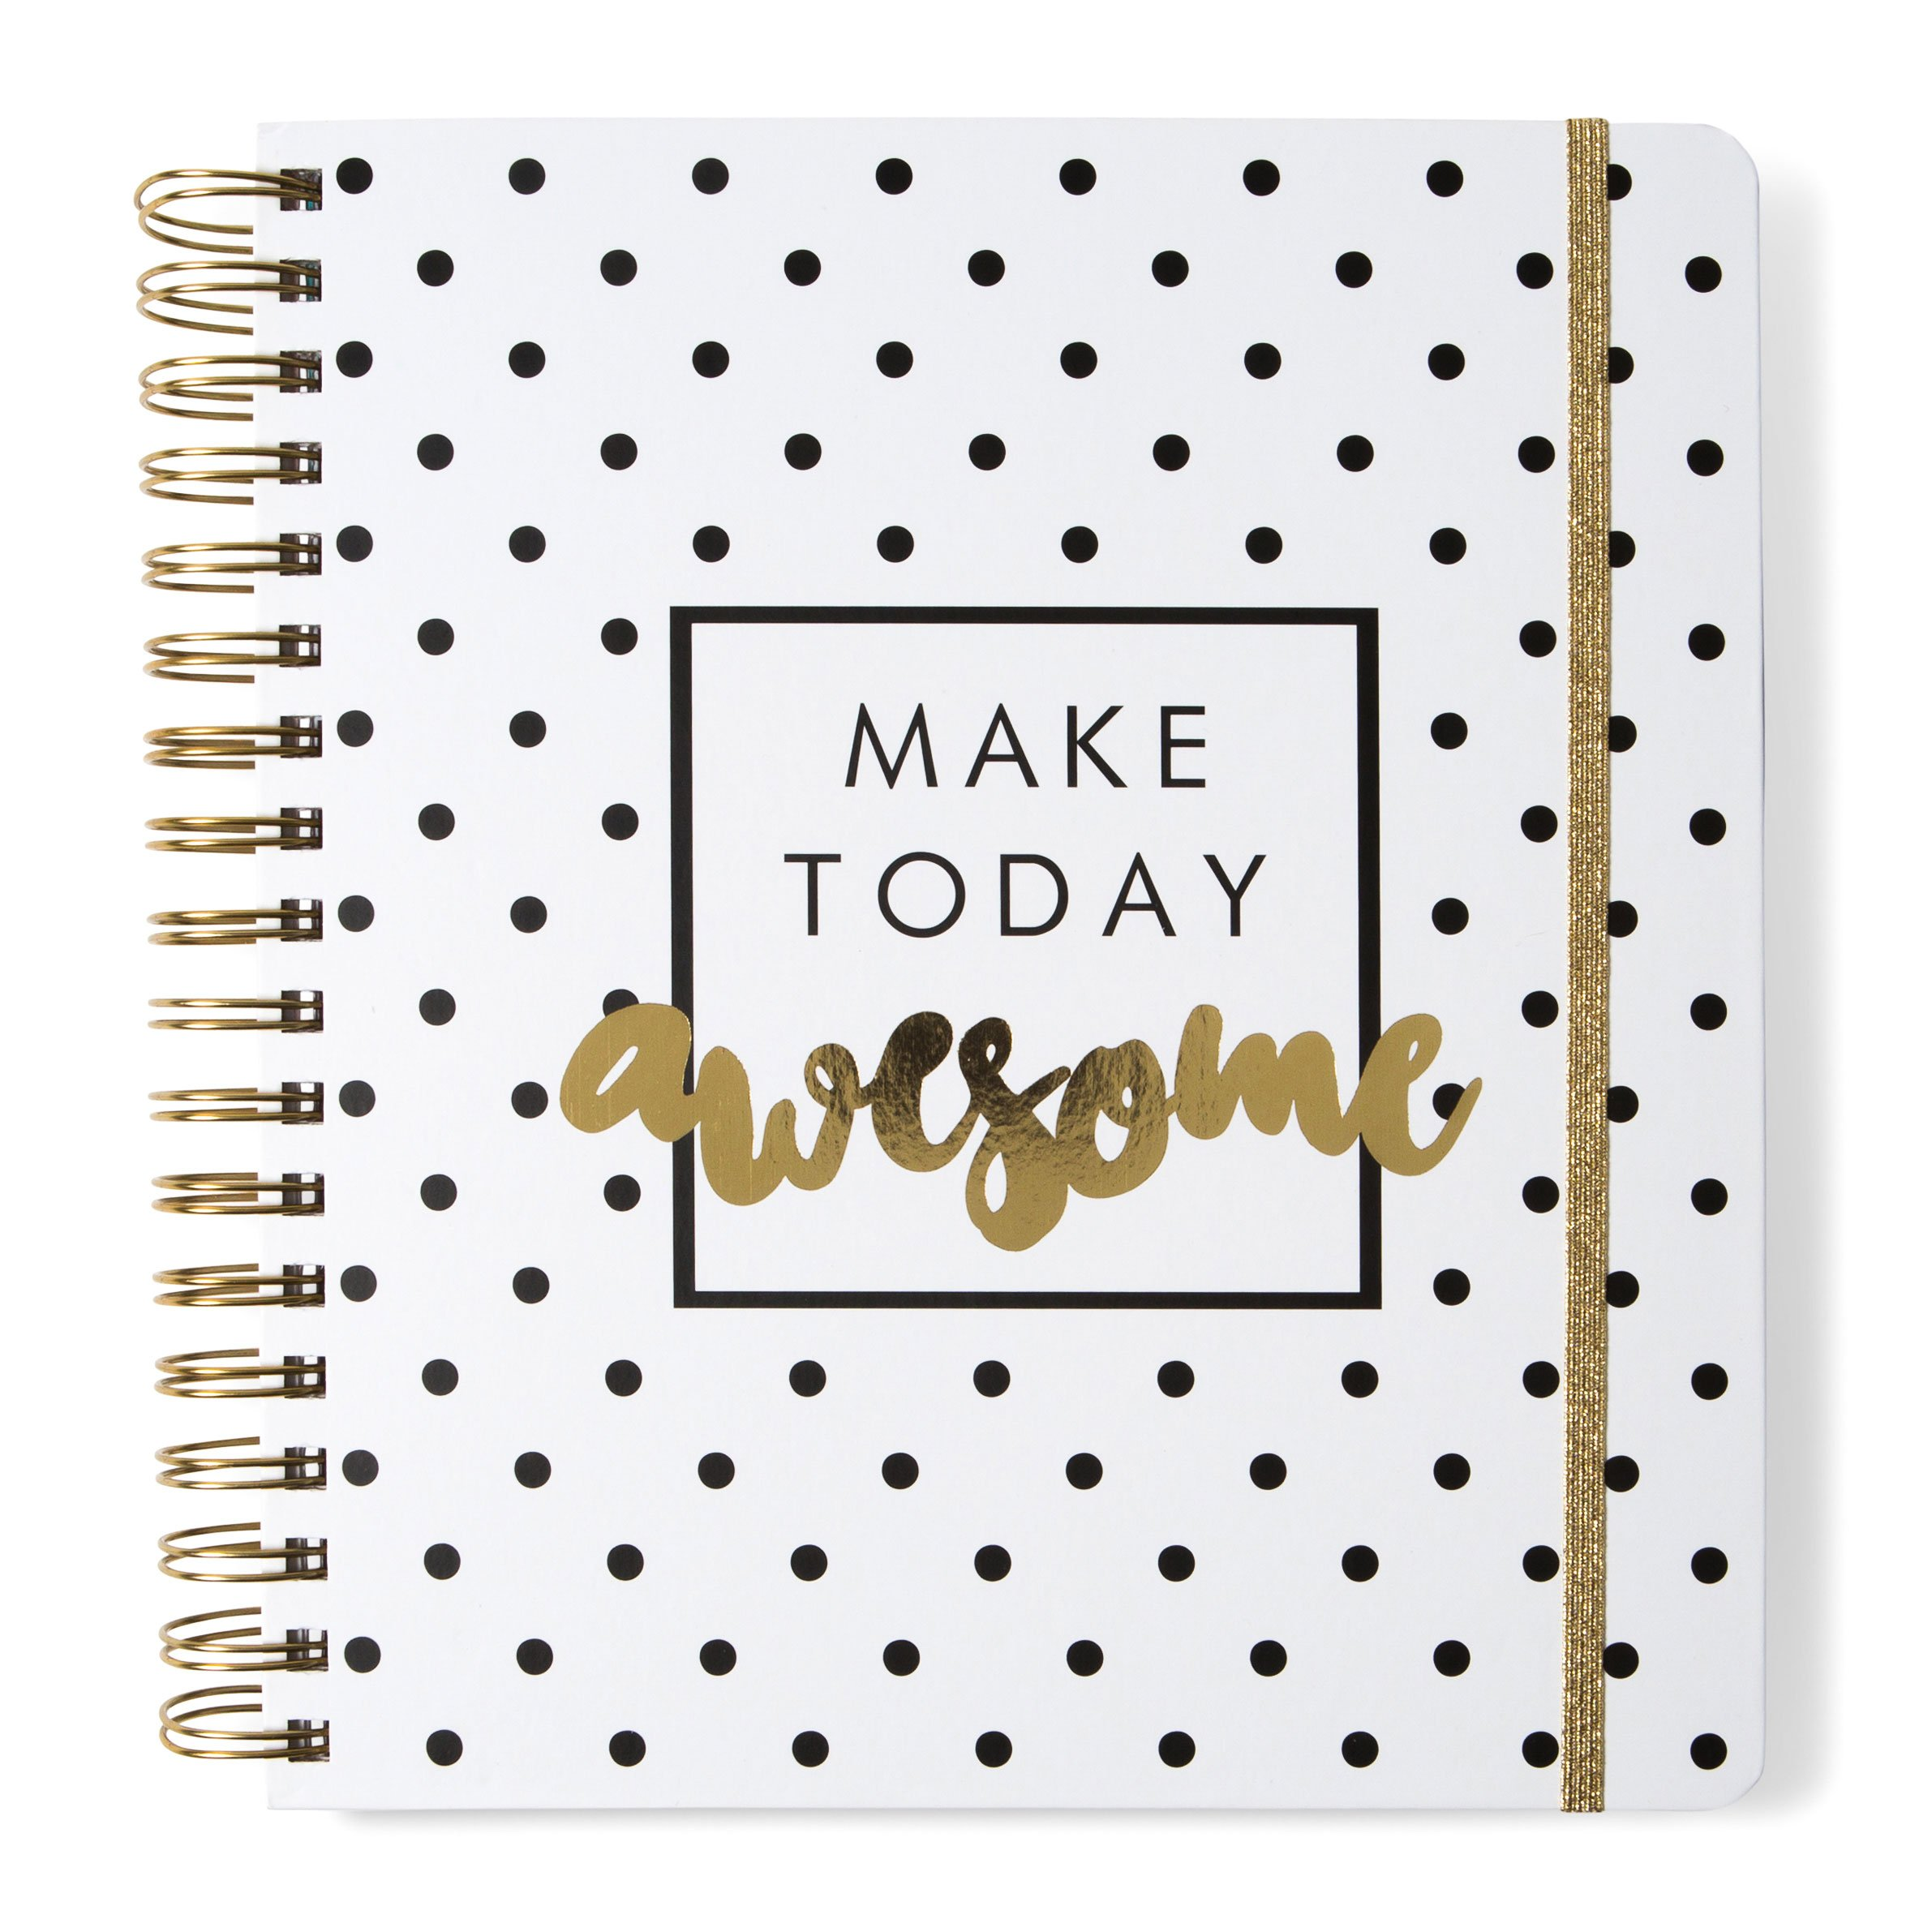 2018-2019 Daily Calendar Agenda and Planner: Track Appointments, Tasks and Increase Productivity with 17-Month Daily and Weekly Personal Organizer for Home Or Office (Make Today Awesome)